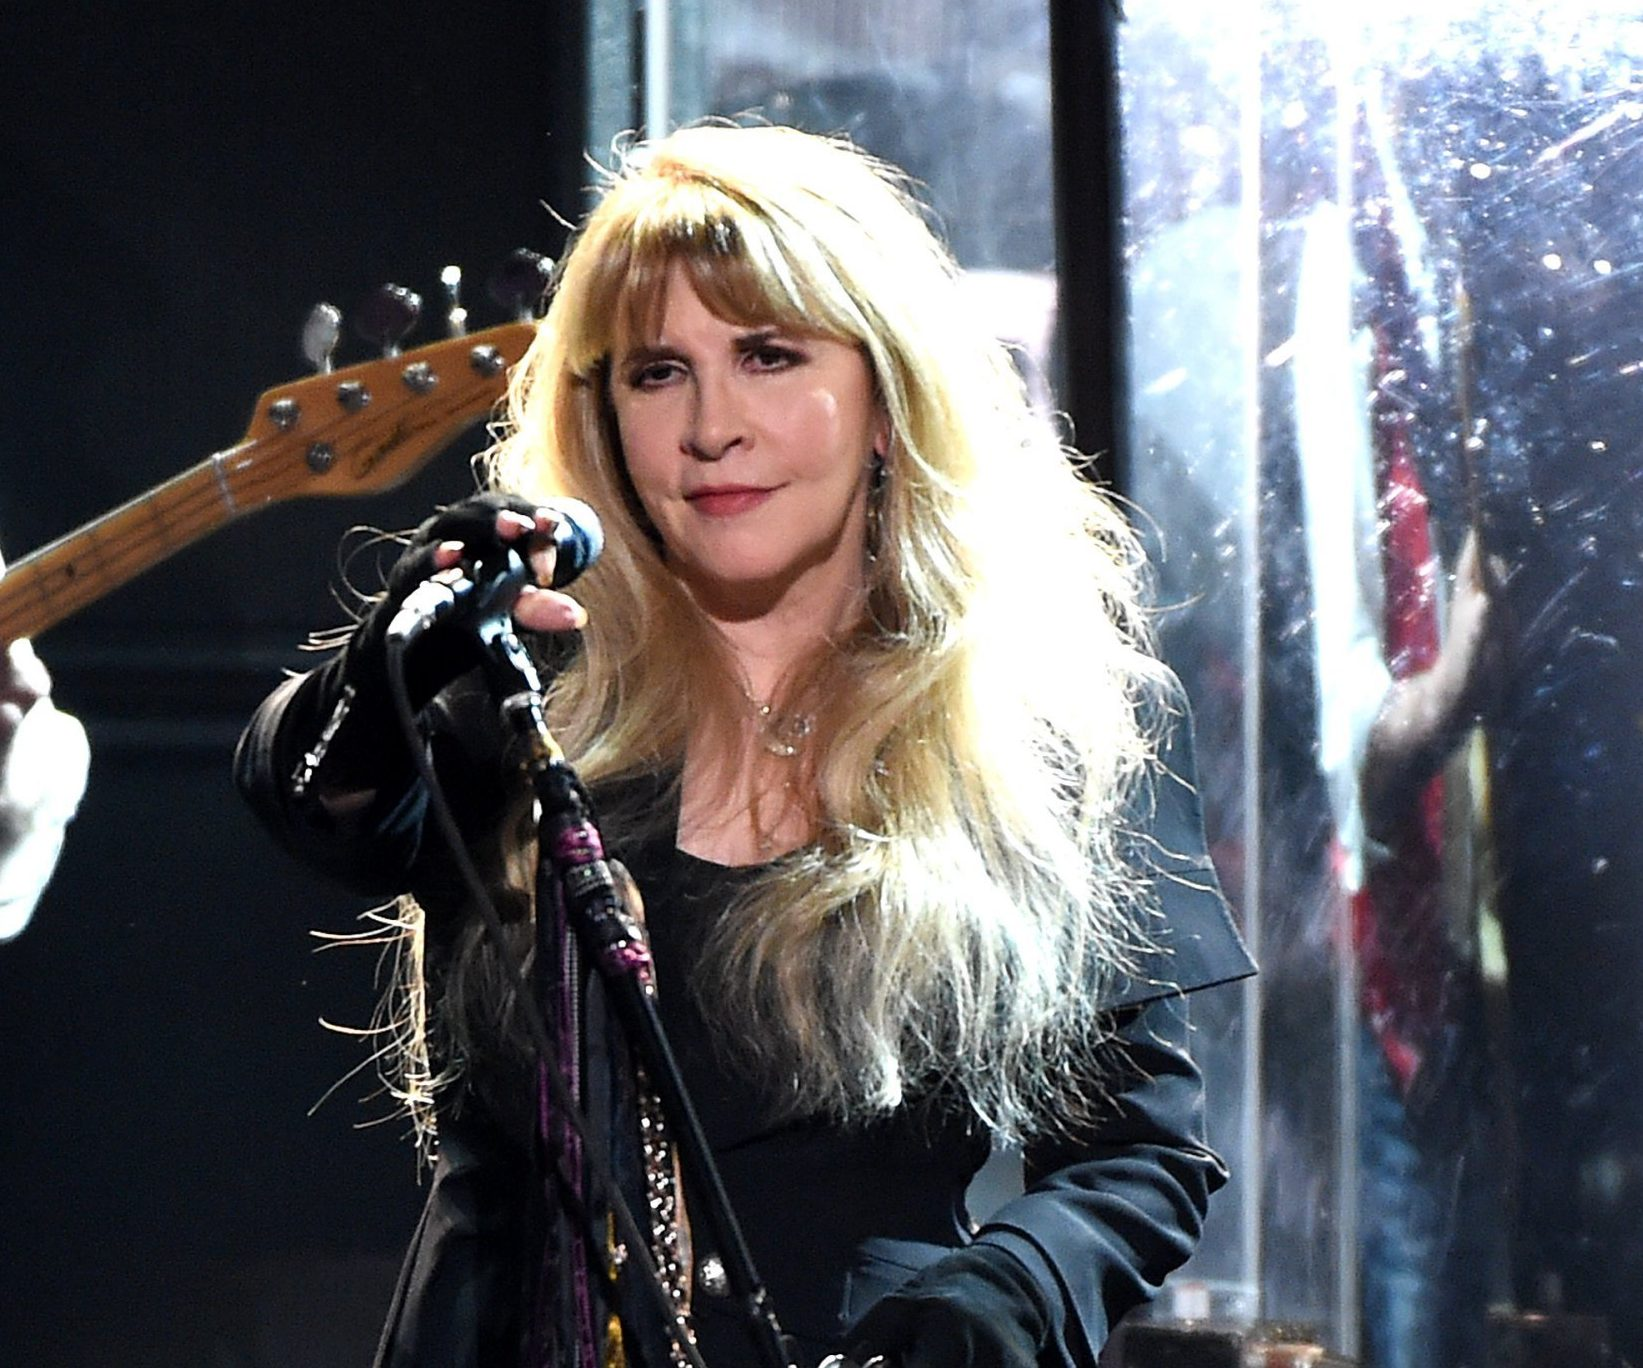 Stevie Nicks becomes two-time Rock and Roll Hall of Fame inductee and hopes it 'opened a door' for other women